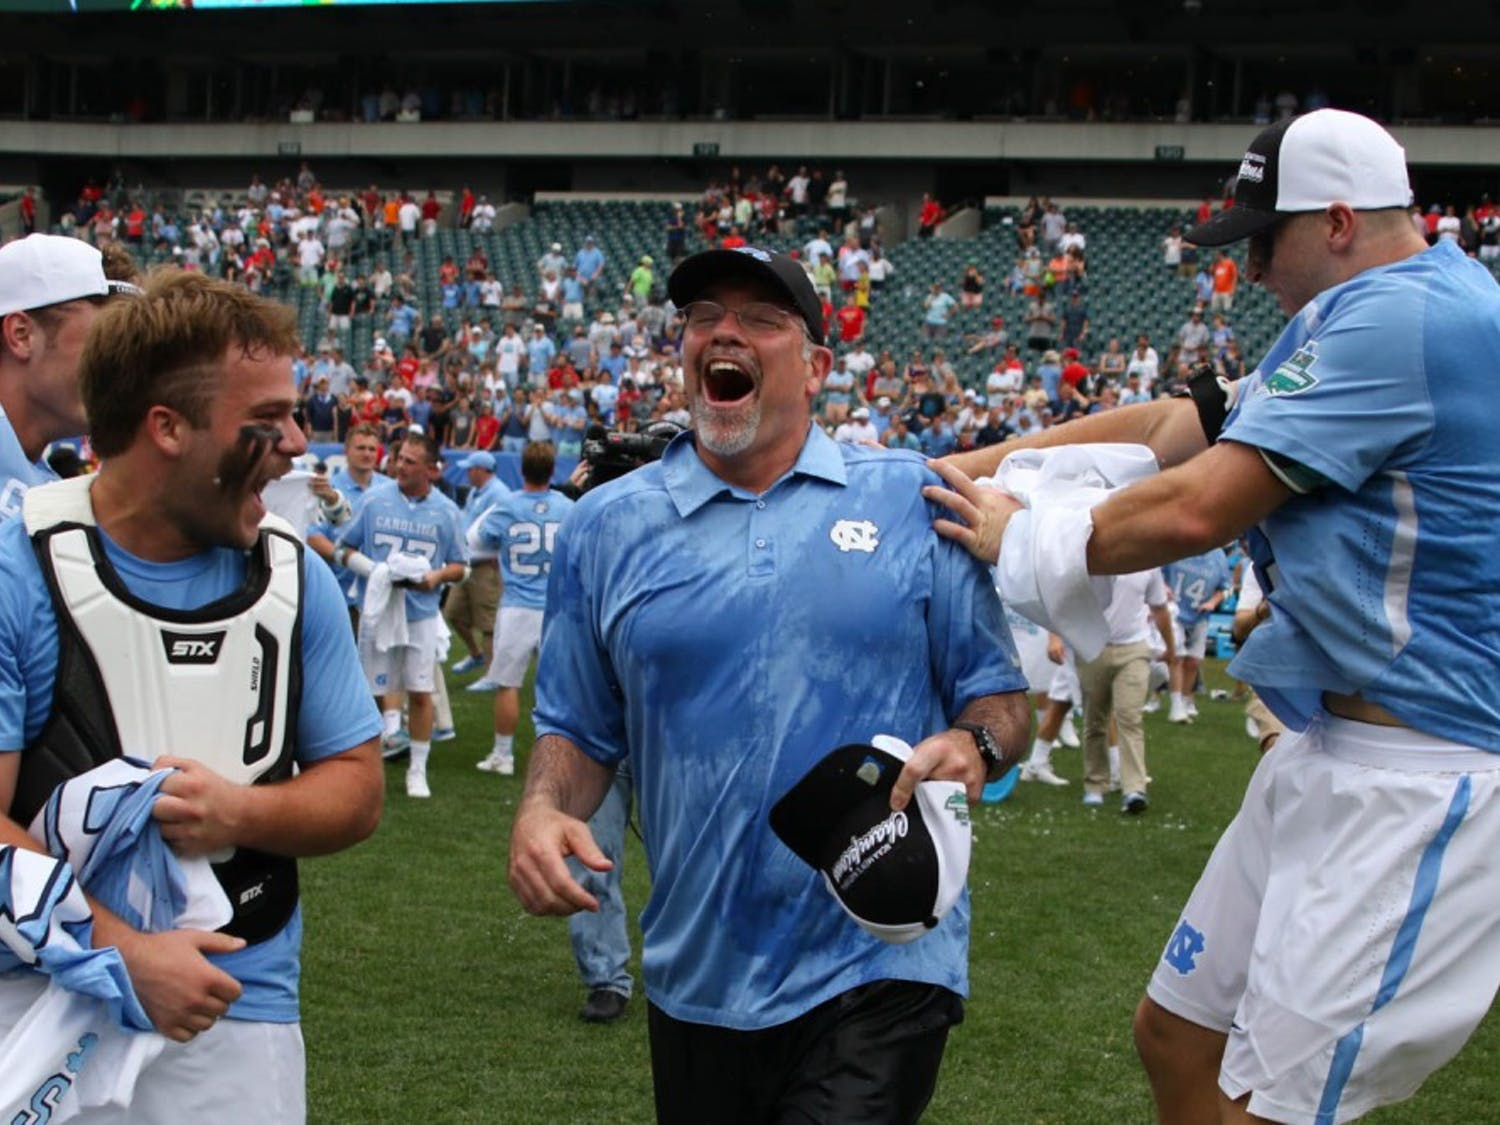 UNC men's lacrosse coach Joe Breschi runs towards his players after being given a gatorade bath.The unseeded North Carolina men's lacrosse team defeated No. 1 Maryland 14-13 in overtime to claim the program's first national championship since 1993 on Monday at Lincoln Financial Field in Philadelphia.